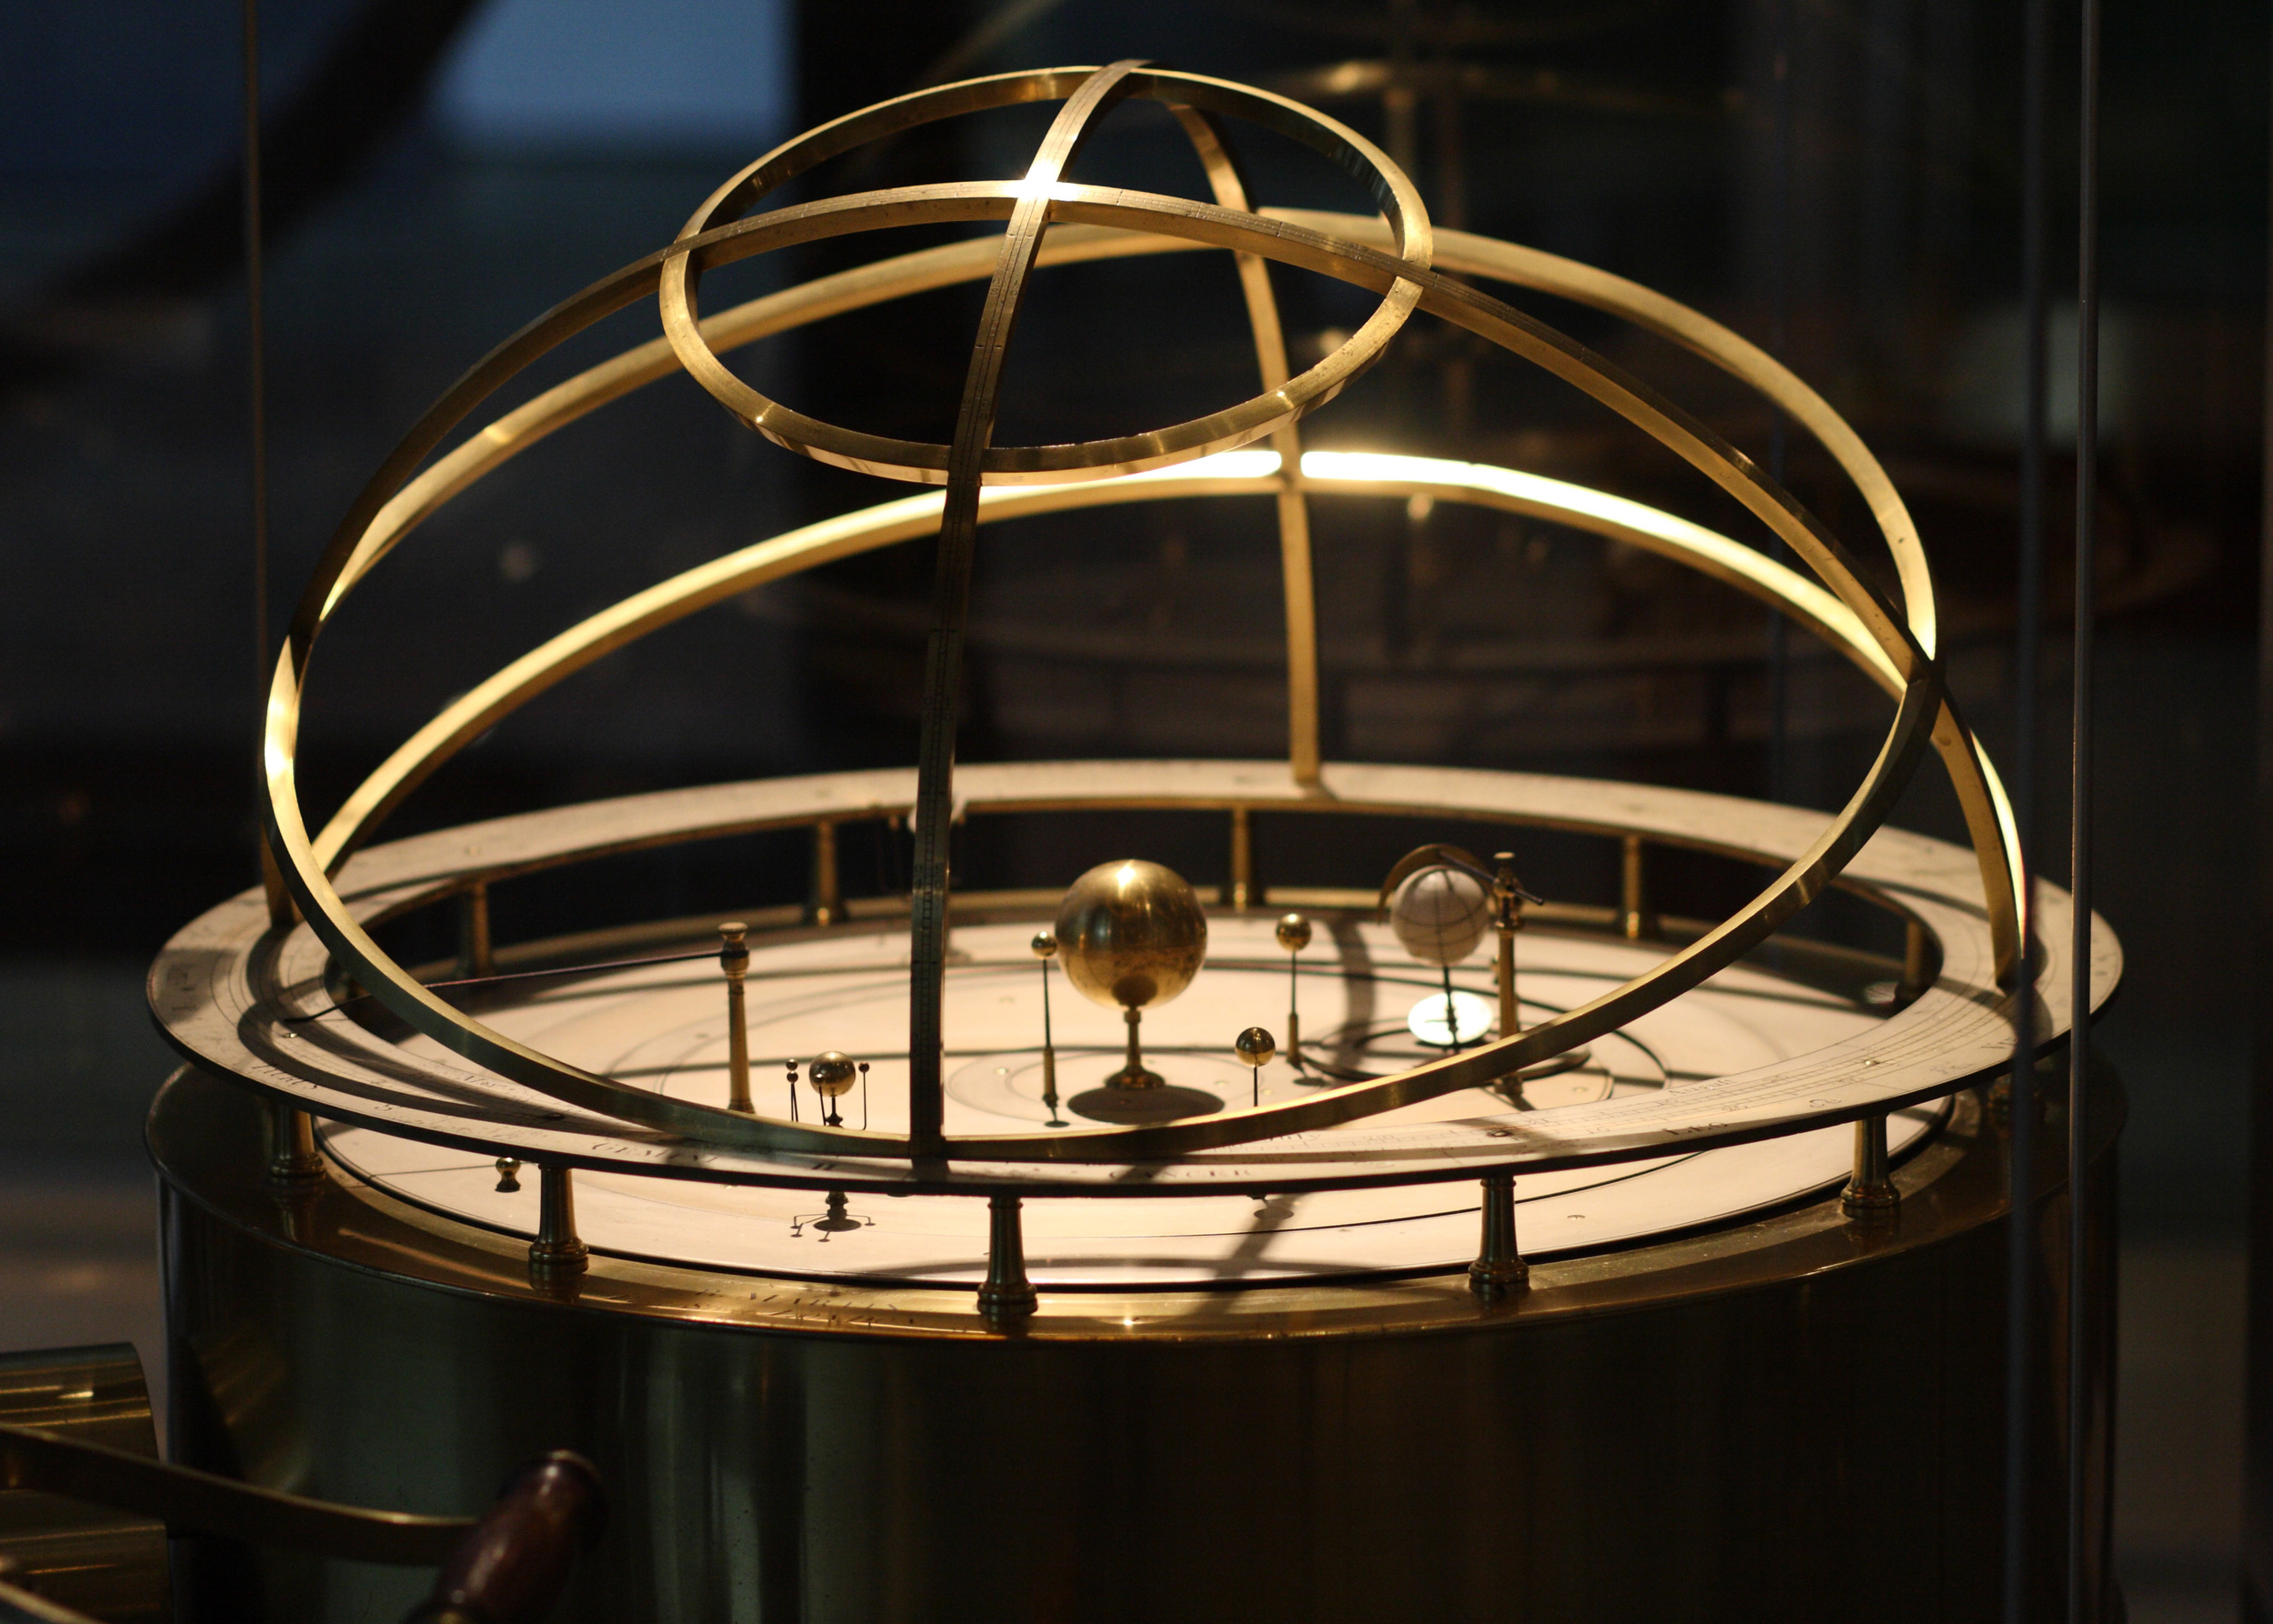 An orrery made by Benjamin Martin in London in 1767, currentlyon display at the Putnam Gallery in the Harvard Science Centre